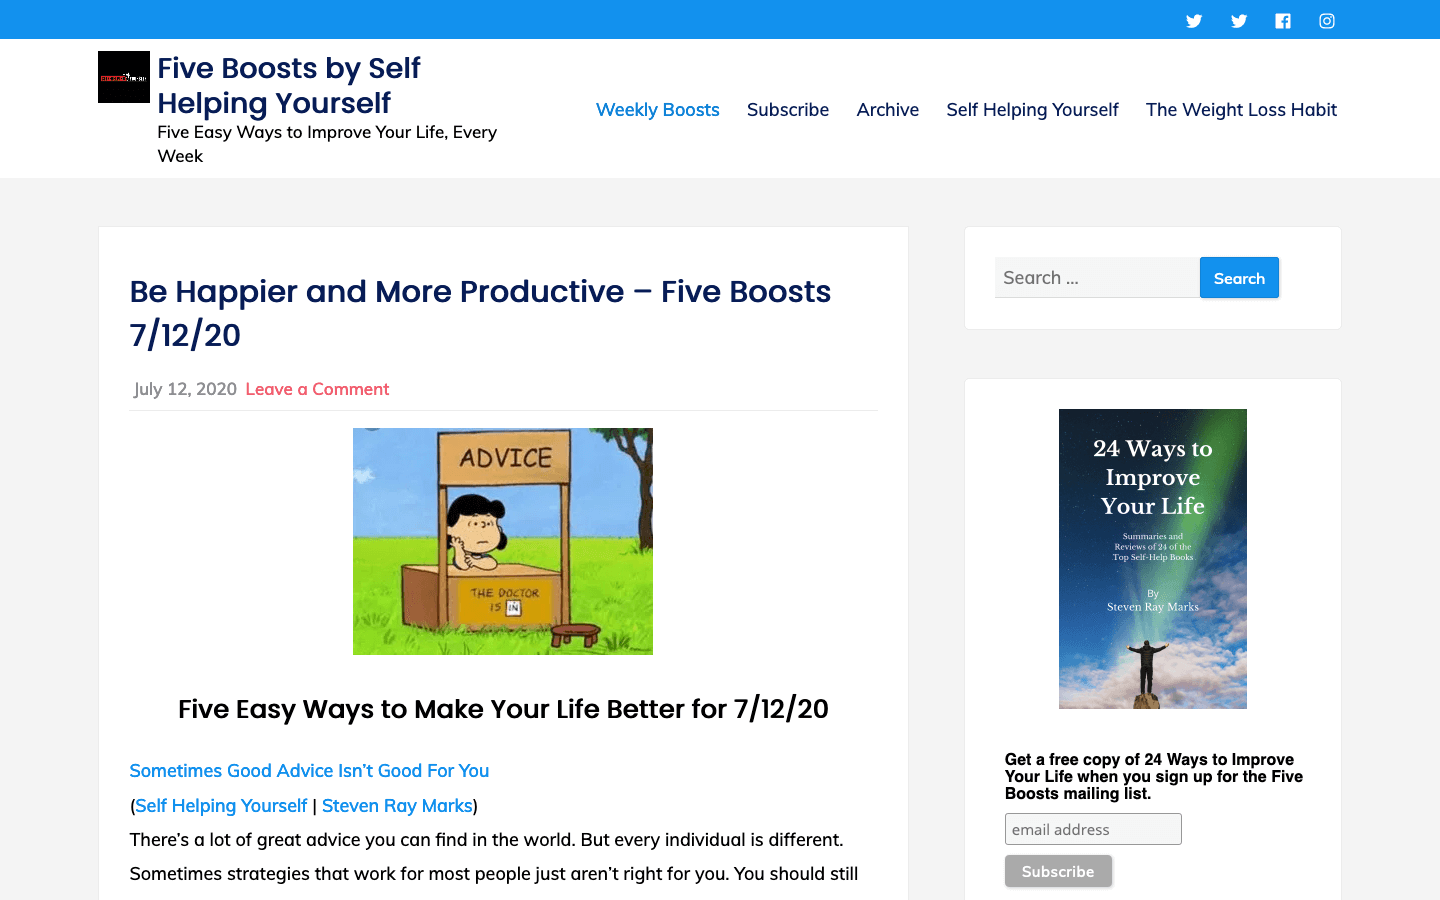 Five Boosts by Self Helping Yourself homepage